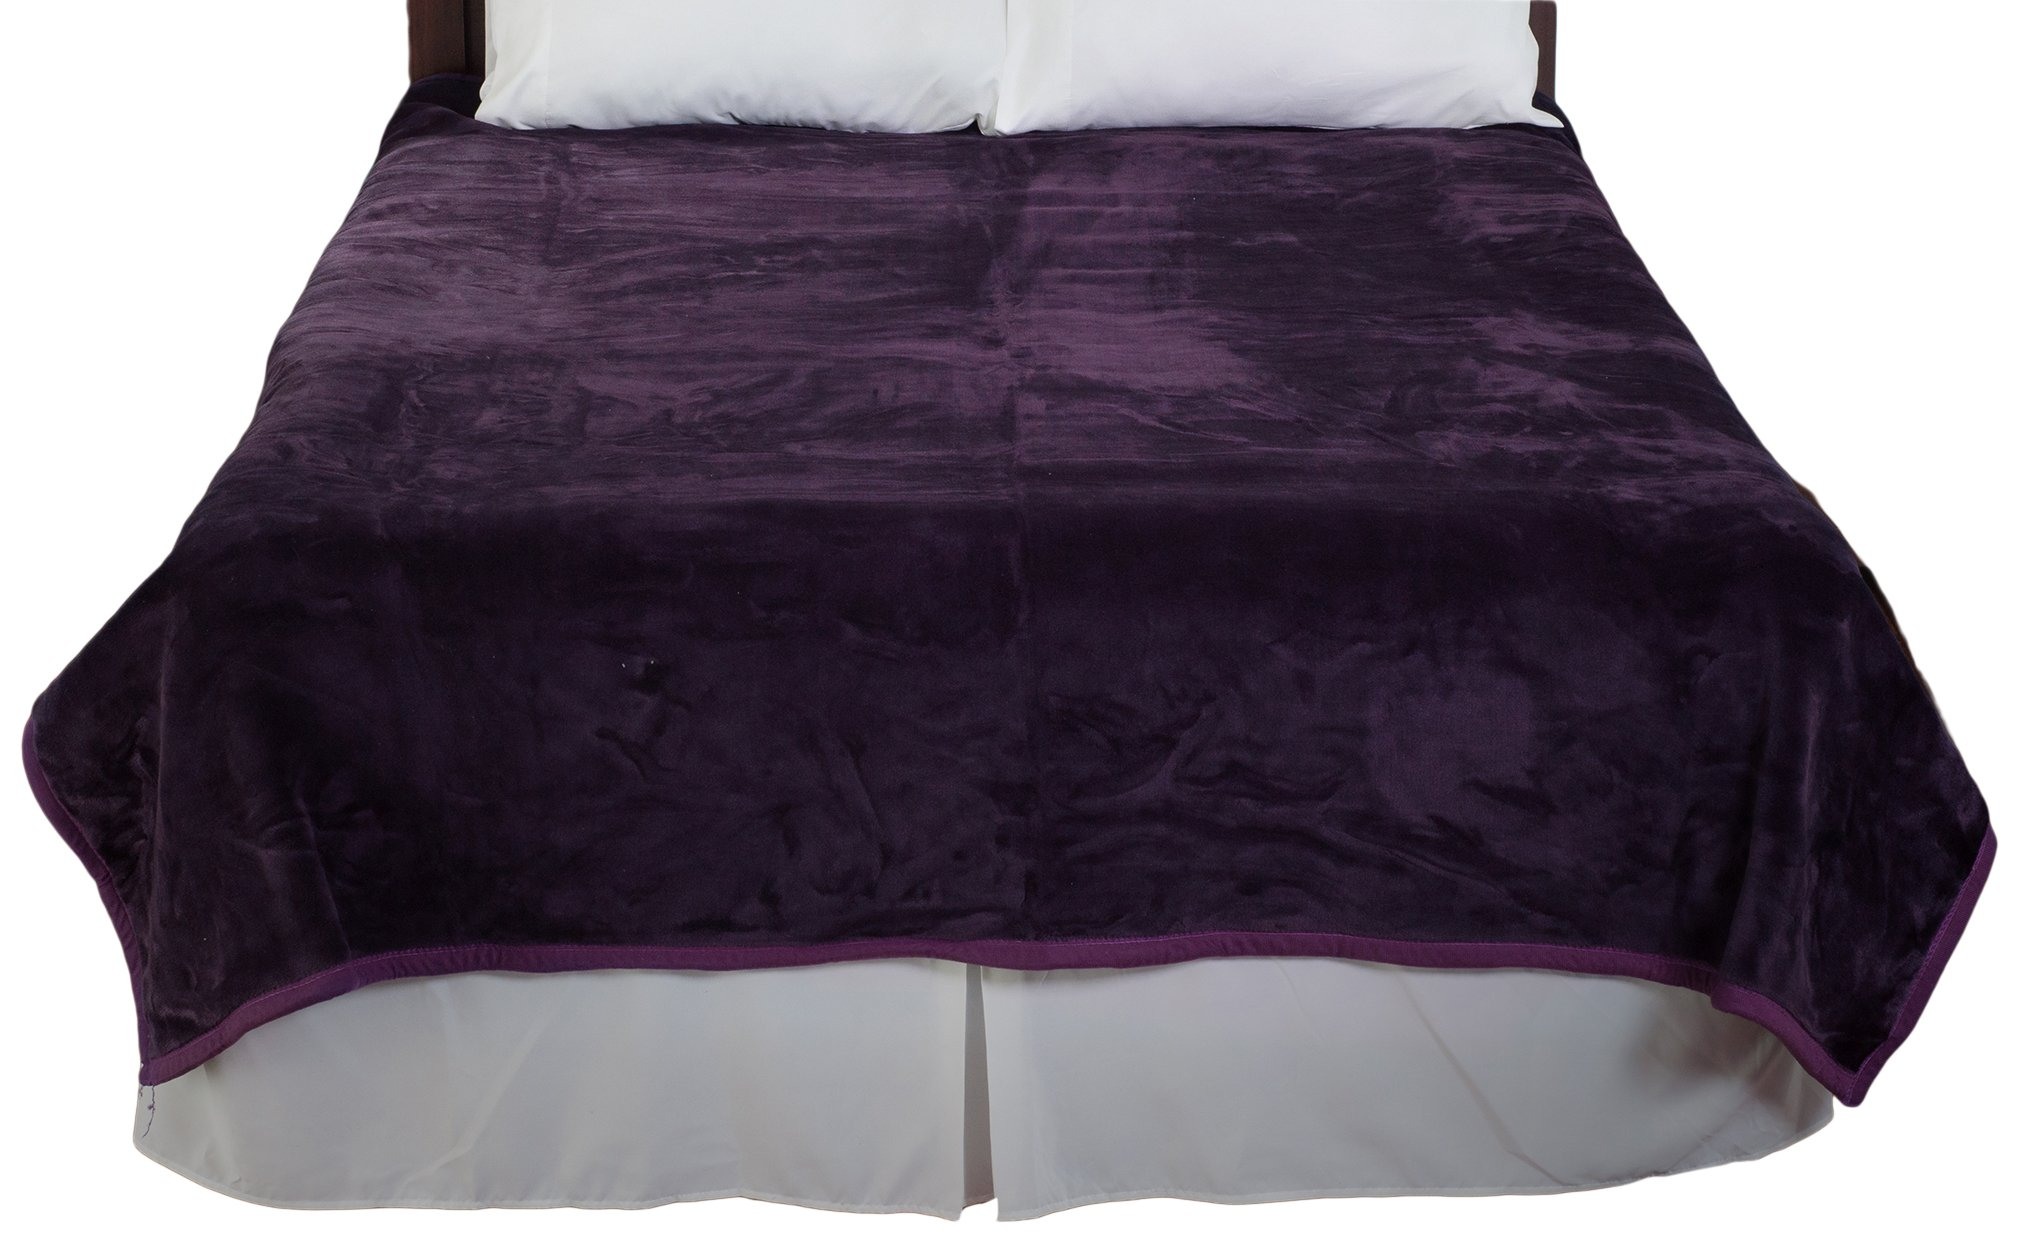 Bedford Home Solid Soft Heavy Thick Plush Mink Blanket, 8-Pound, Purple